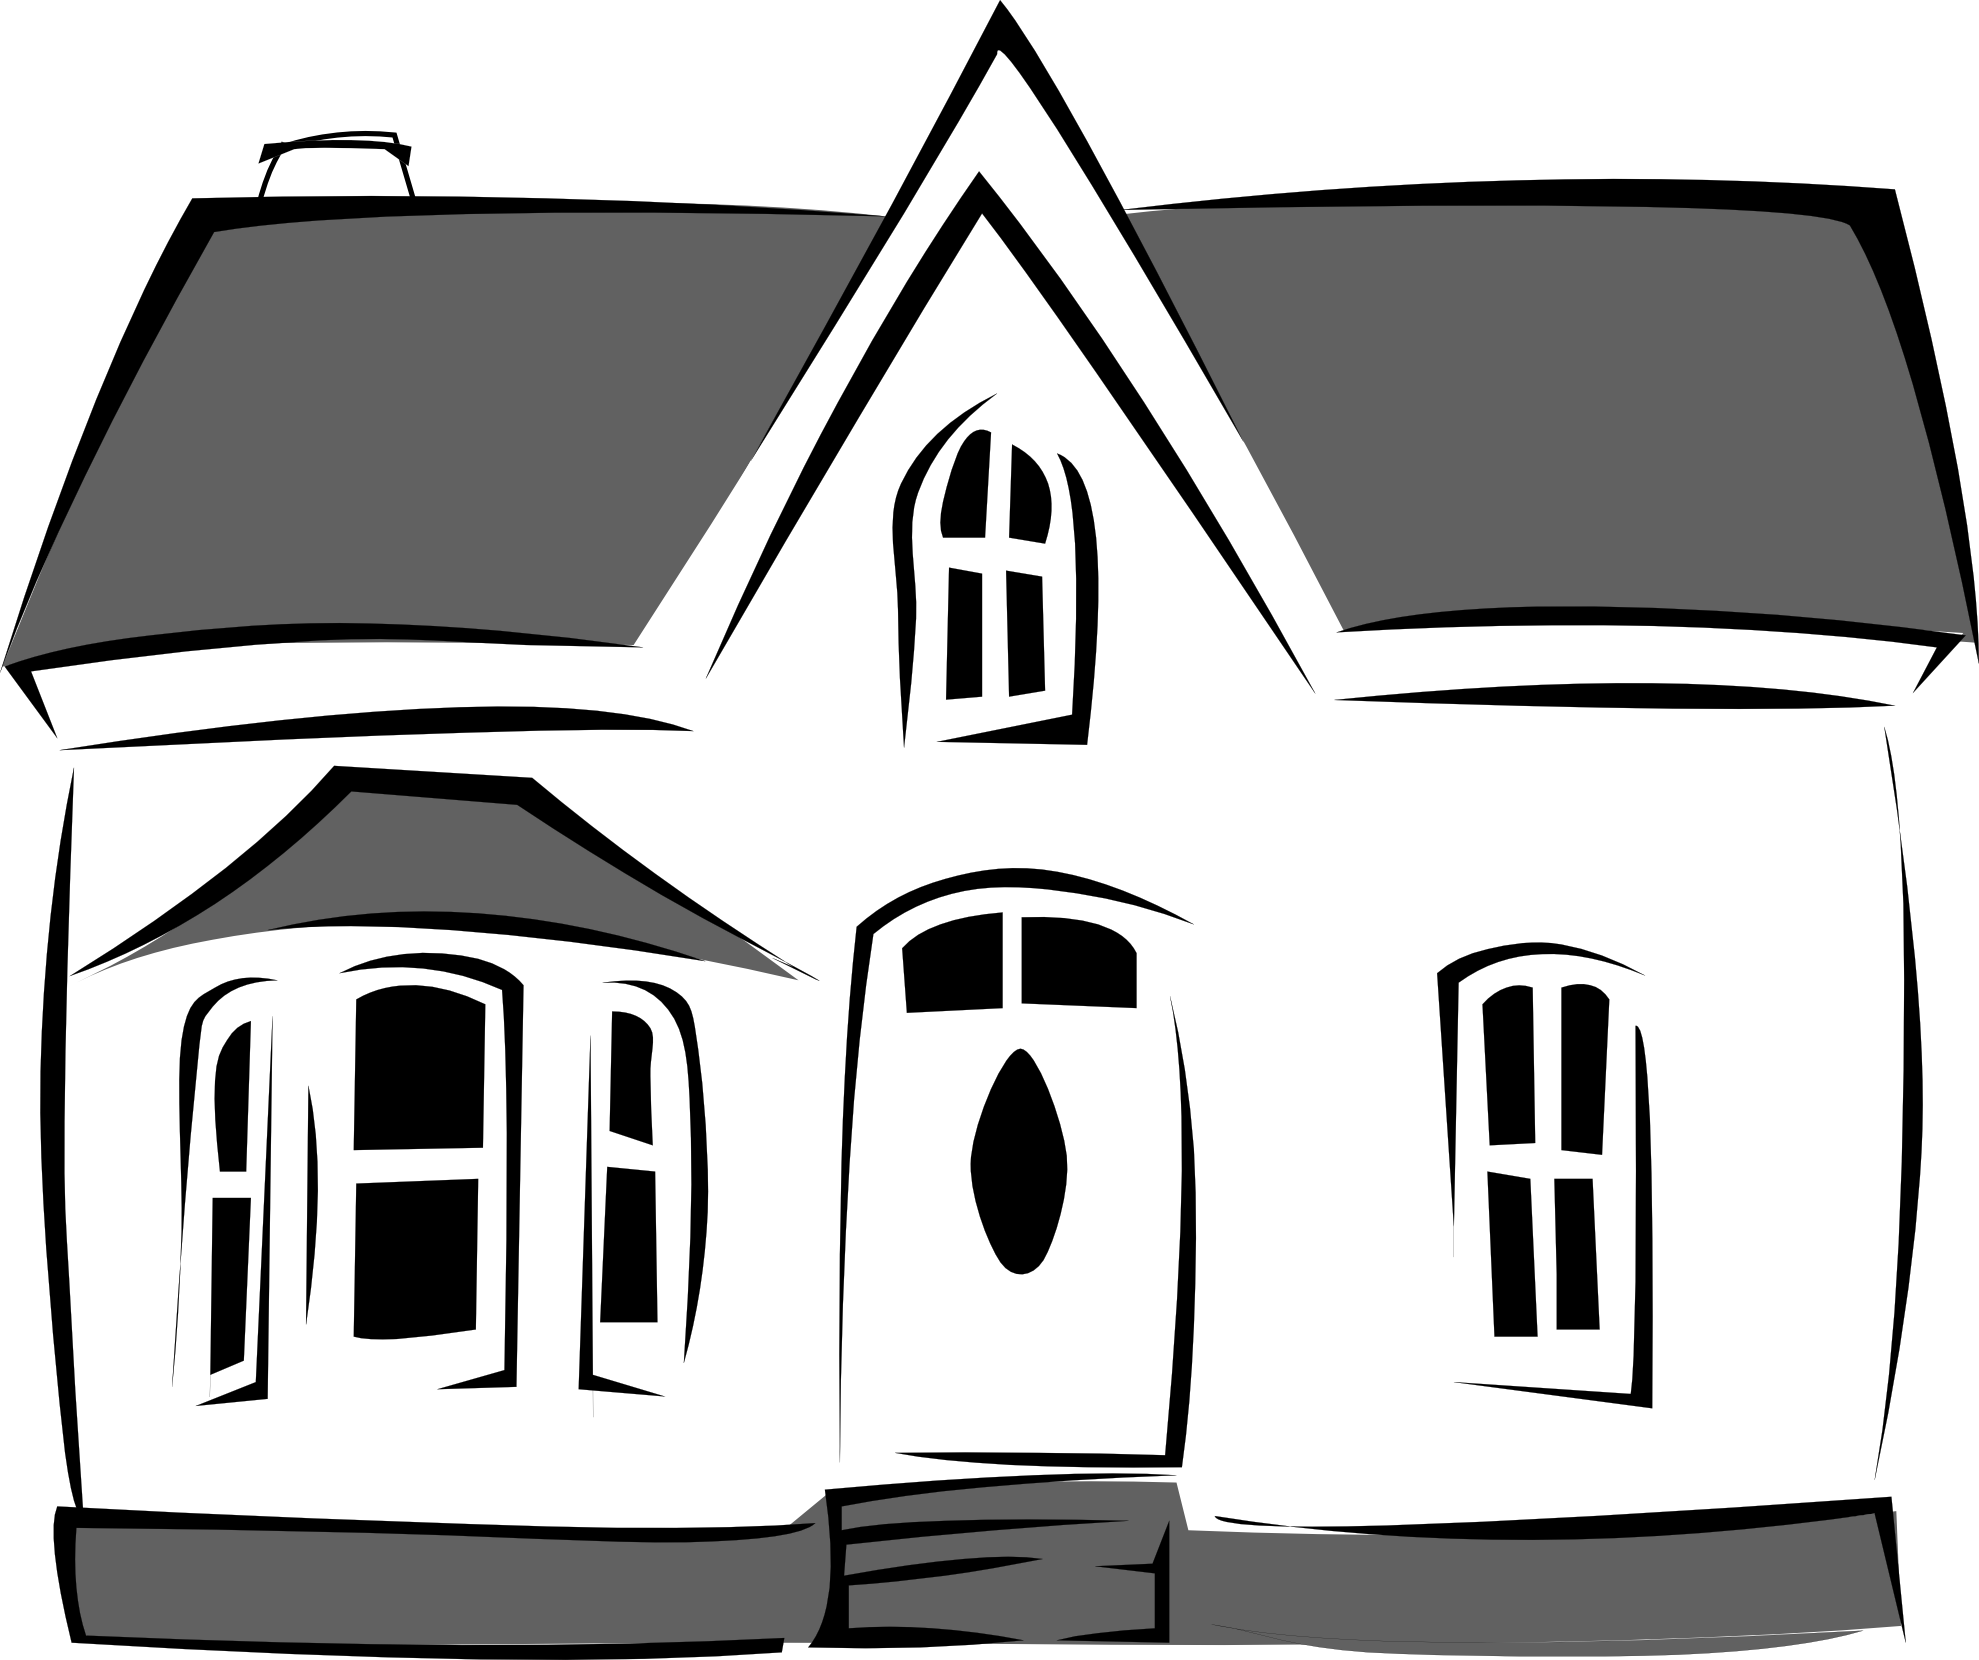 Adobe house clipart black and white picture freeuse stock Black And White Cartoon House ClipArt Best, black and white house ... picture freeuse stock